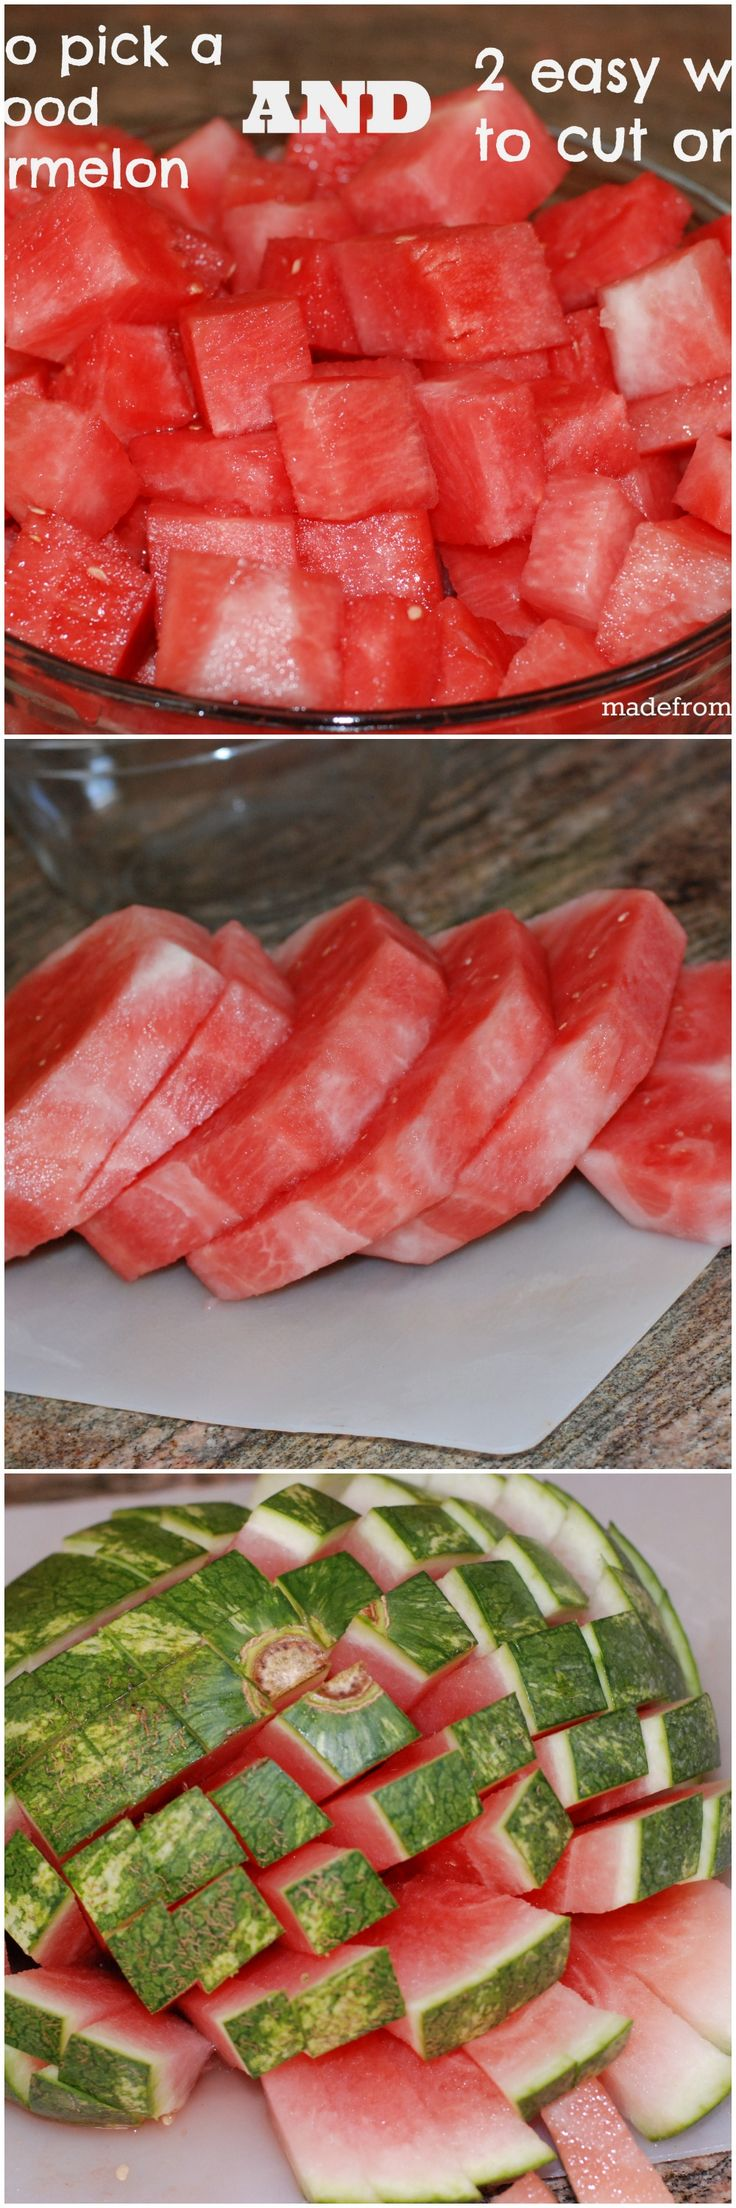 How to pick a watermelon and two ways to cut one. Makes it so easy!